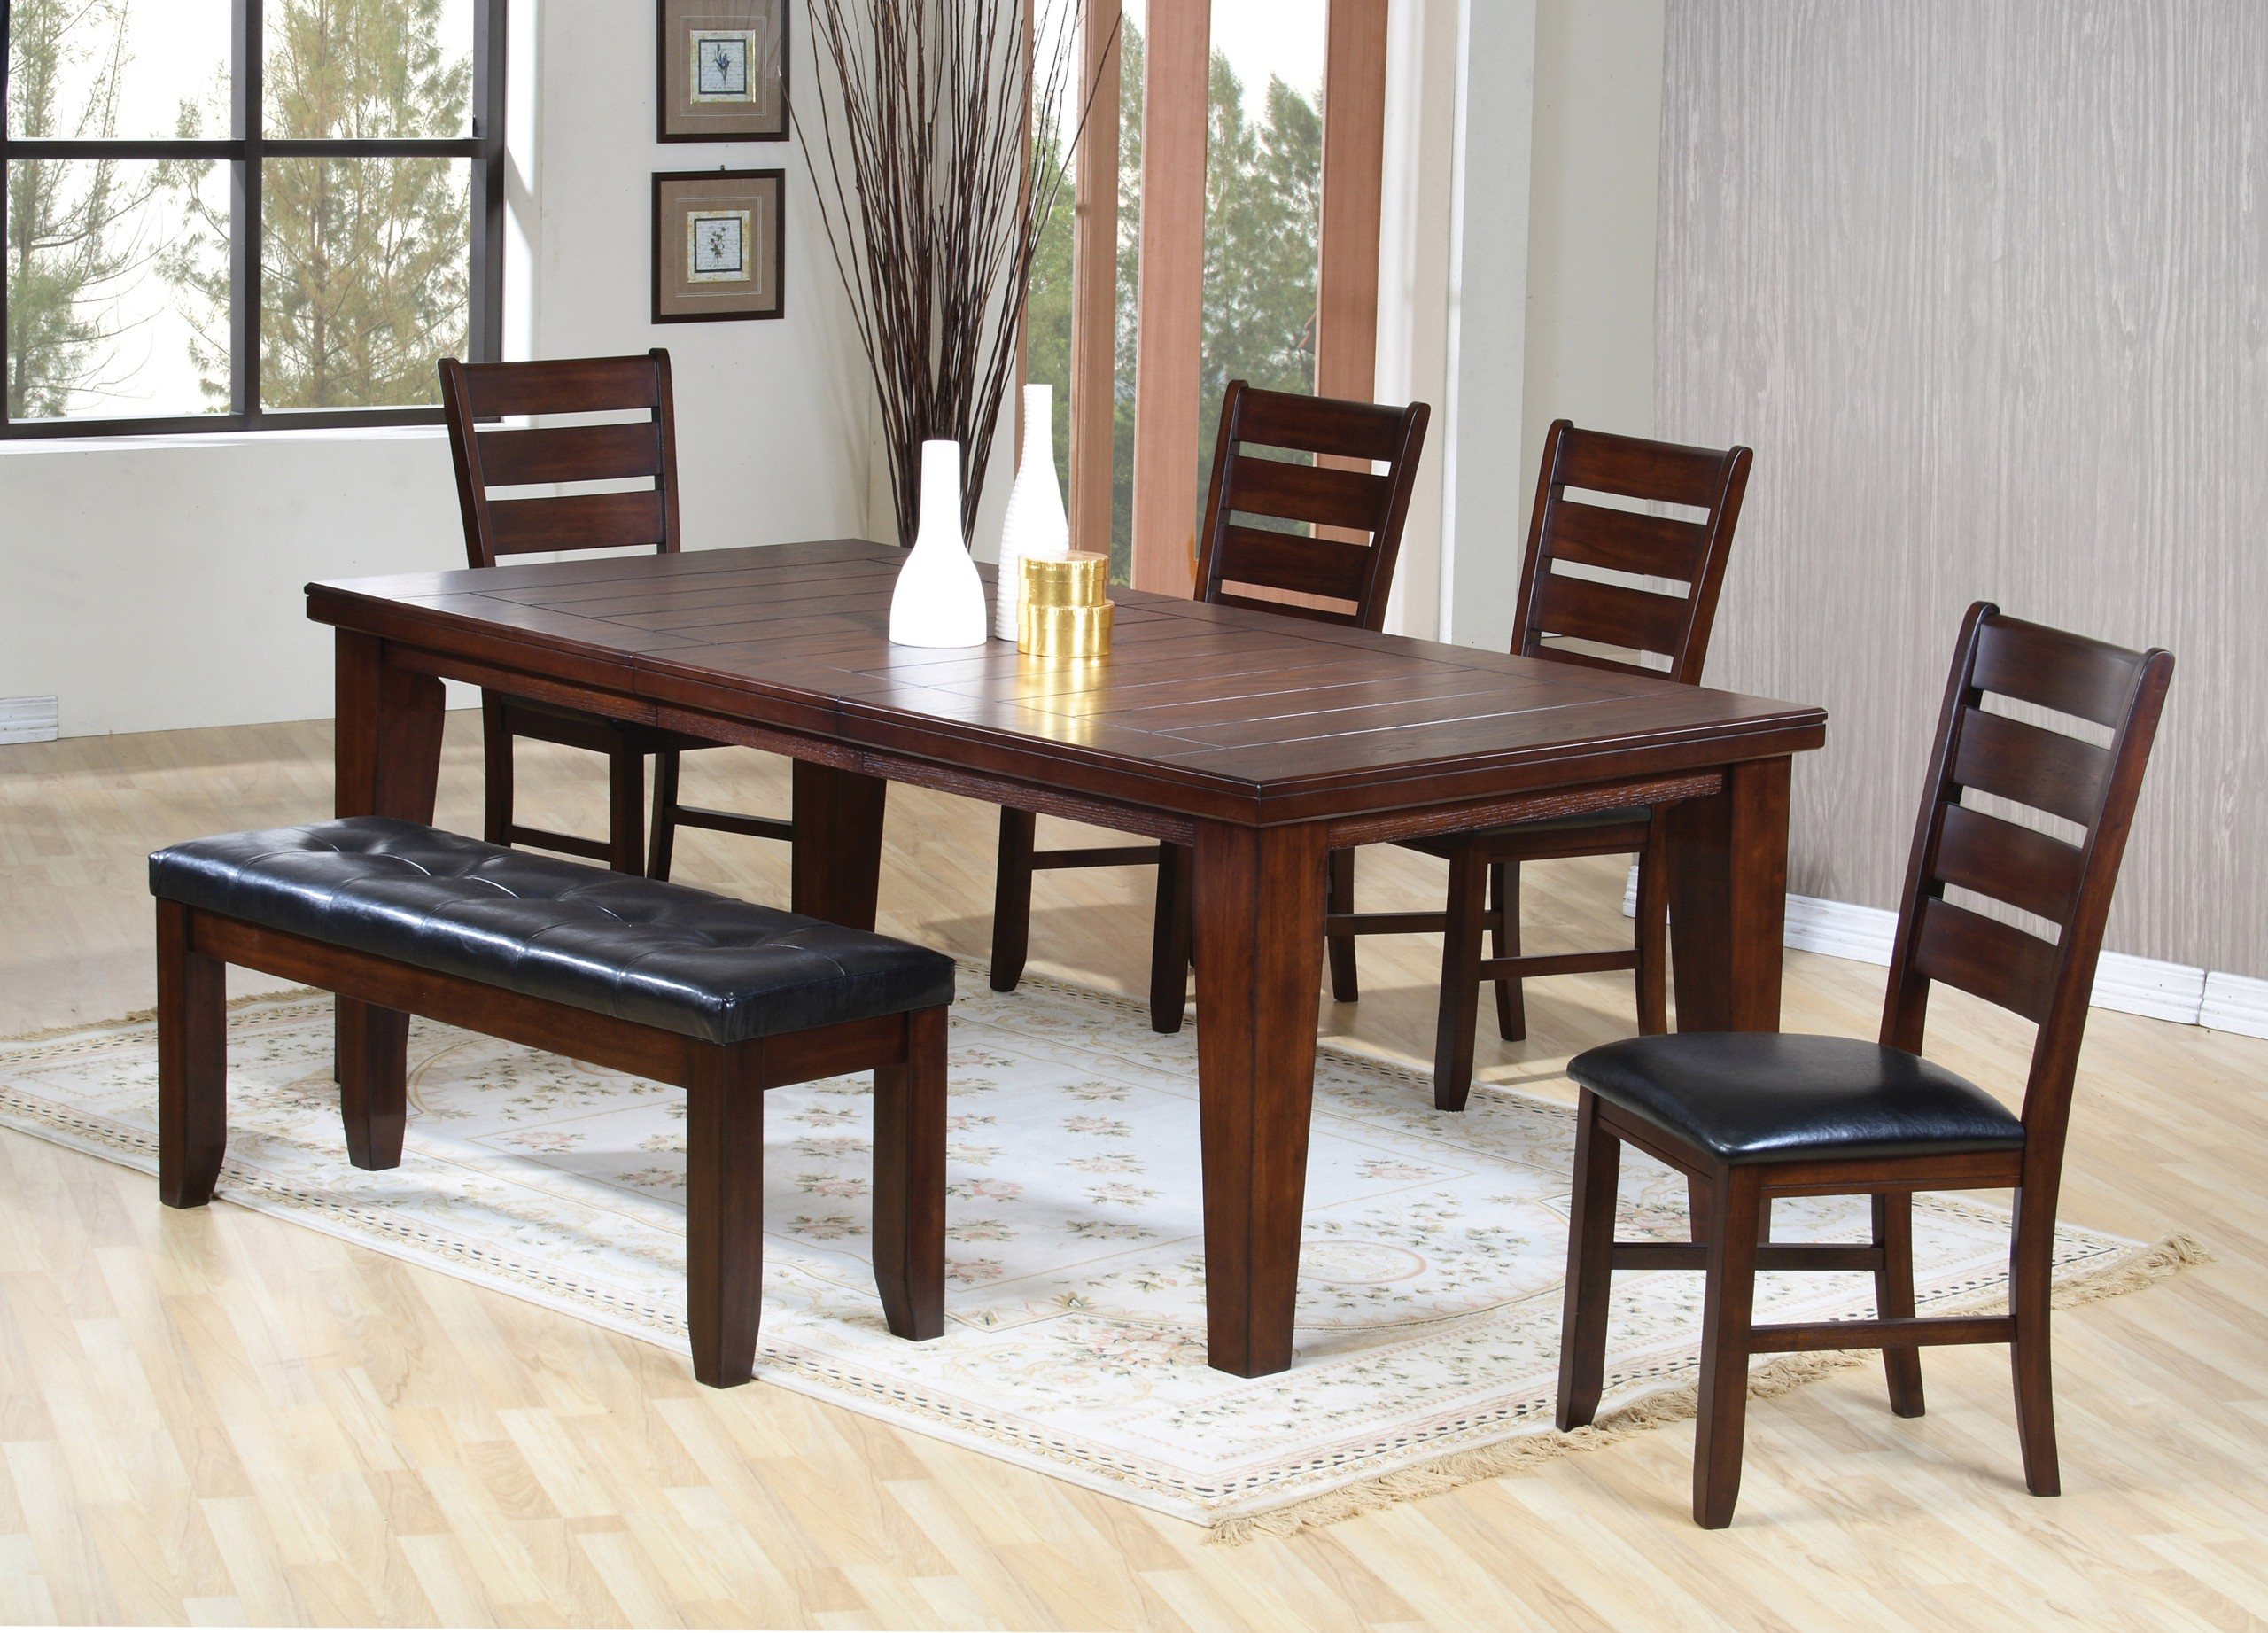 6pc Dining Table \u0026 Chairs Set with Ladder Back Dark Oak Finish & Dining Table With Chairs And Bench - Foter